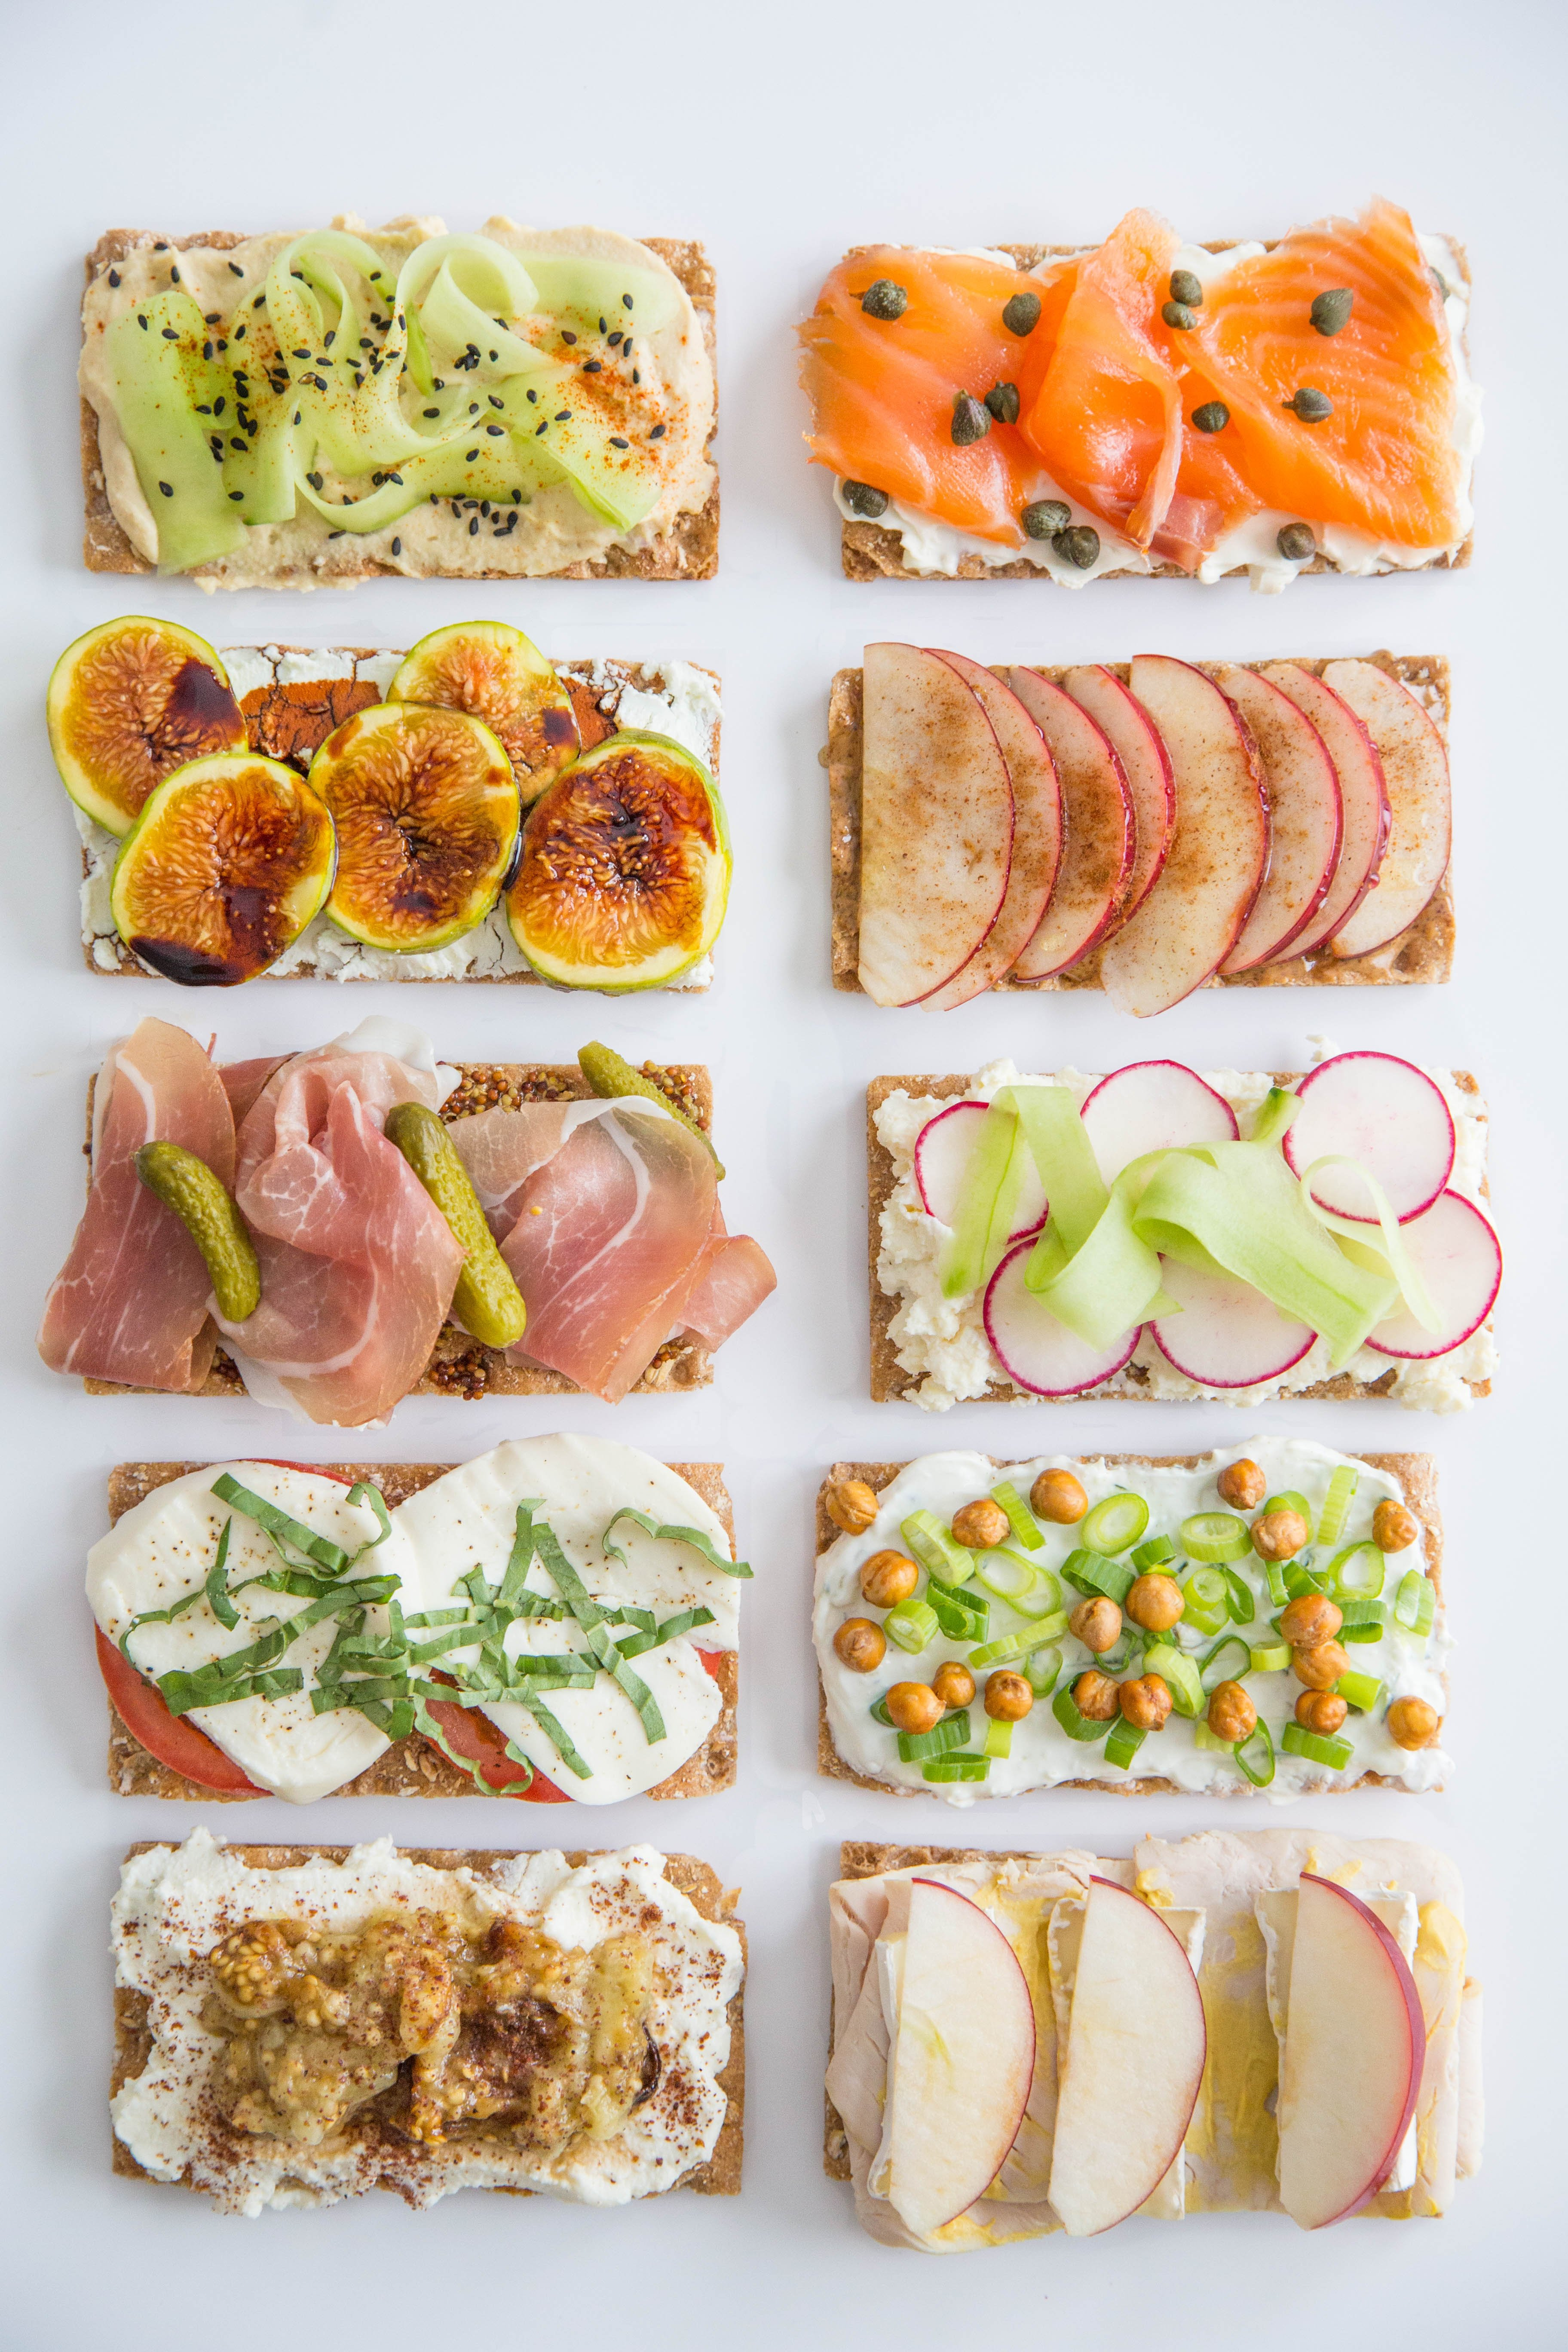 Turn A Wasa Cracker Into A 5 Minute Lunch 10 Ways Kitchn